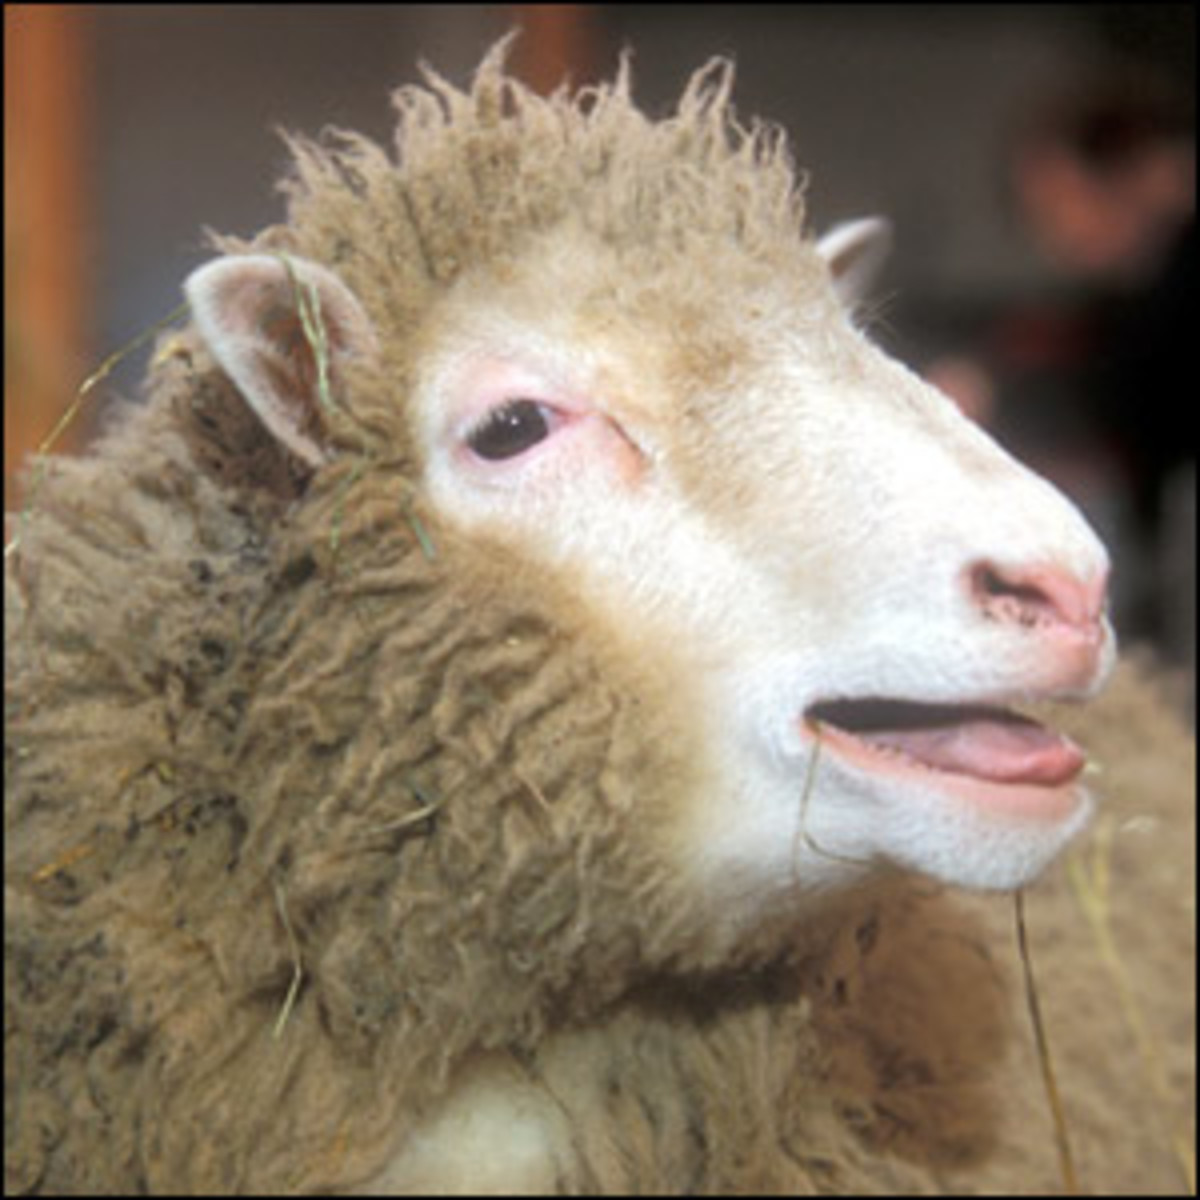 Dolly the sheep, the first cloned animal